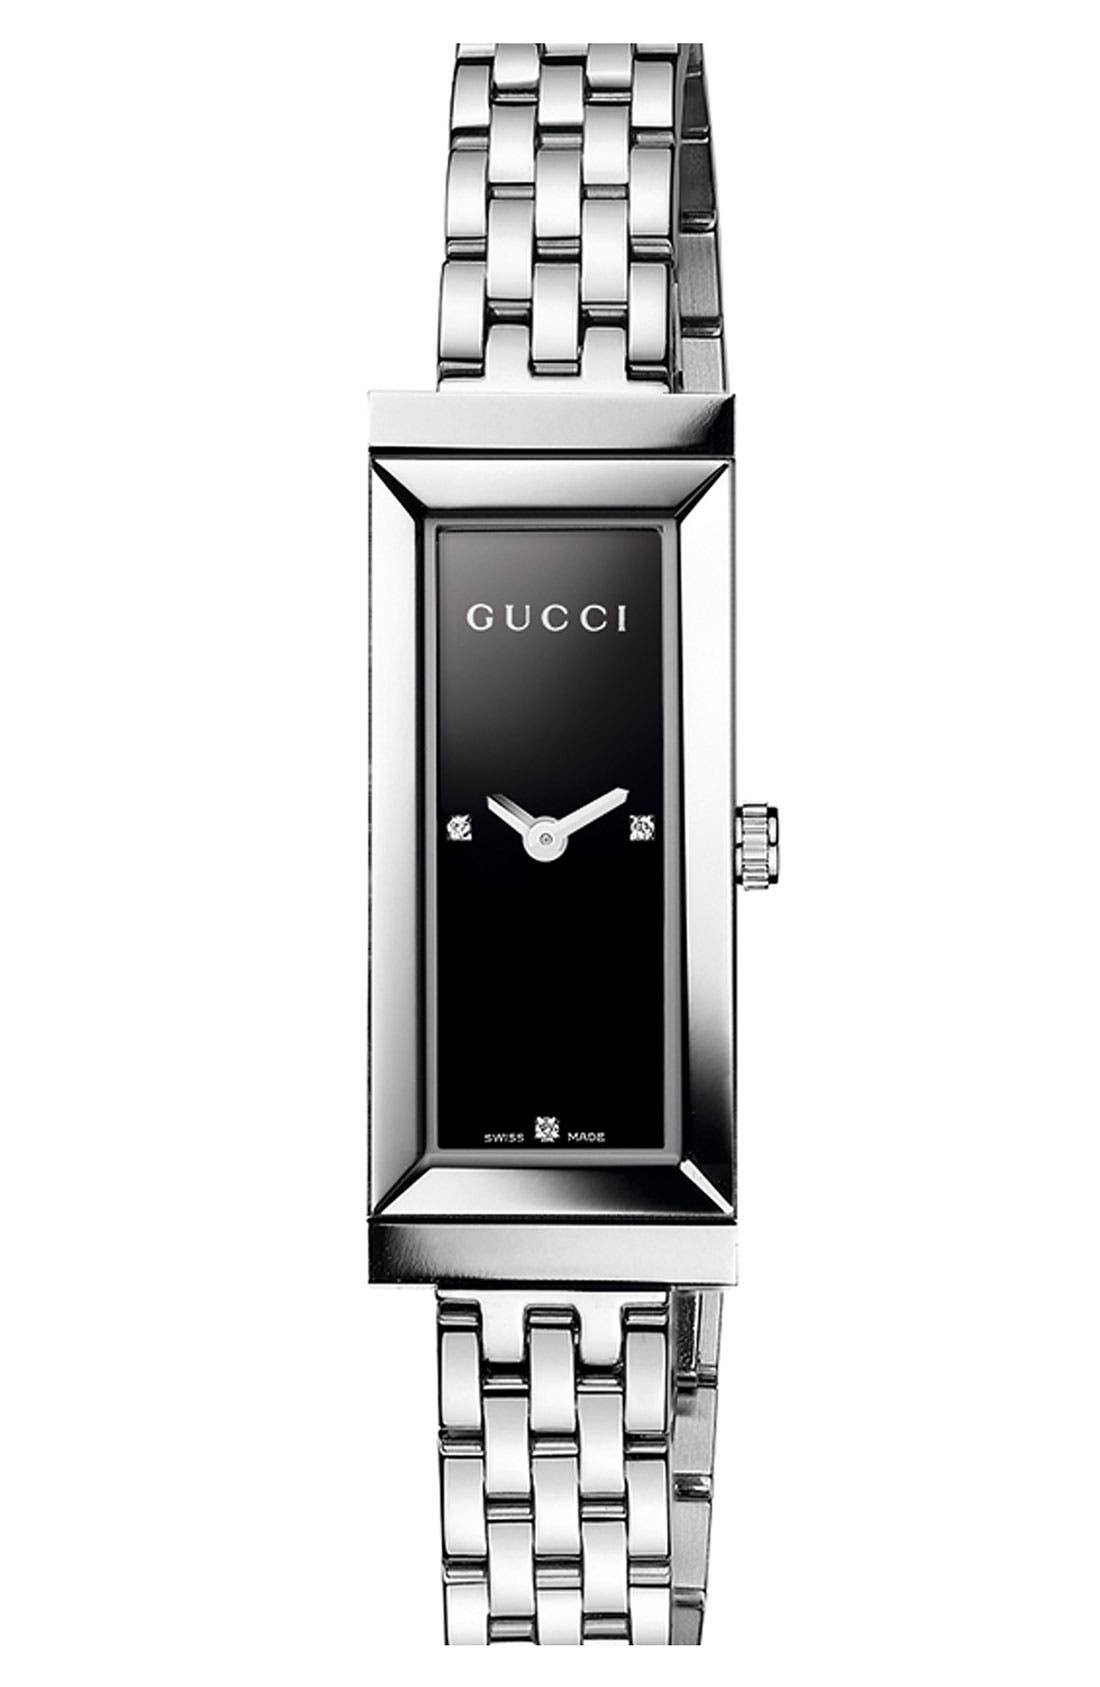 Alternate Image 1 Selected - Gucci 'G-Frame' Small Rectangle Bracelet Watch, 15mm x 35mm